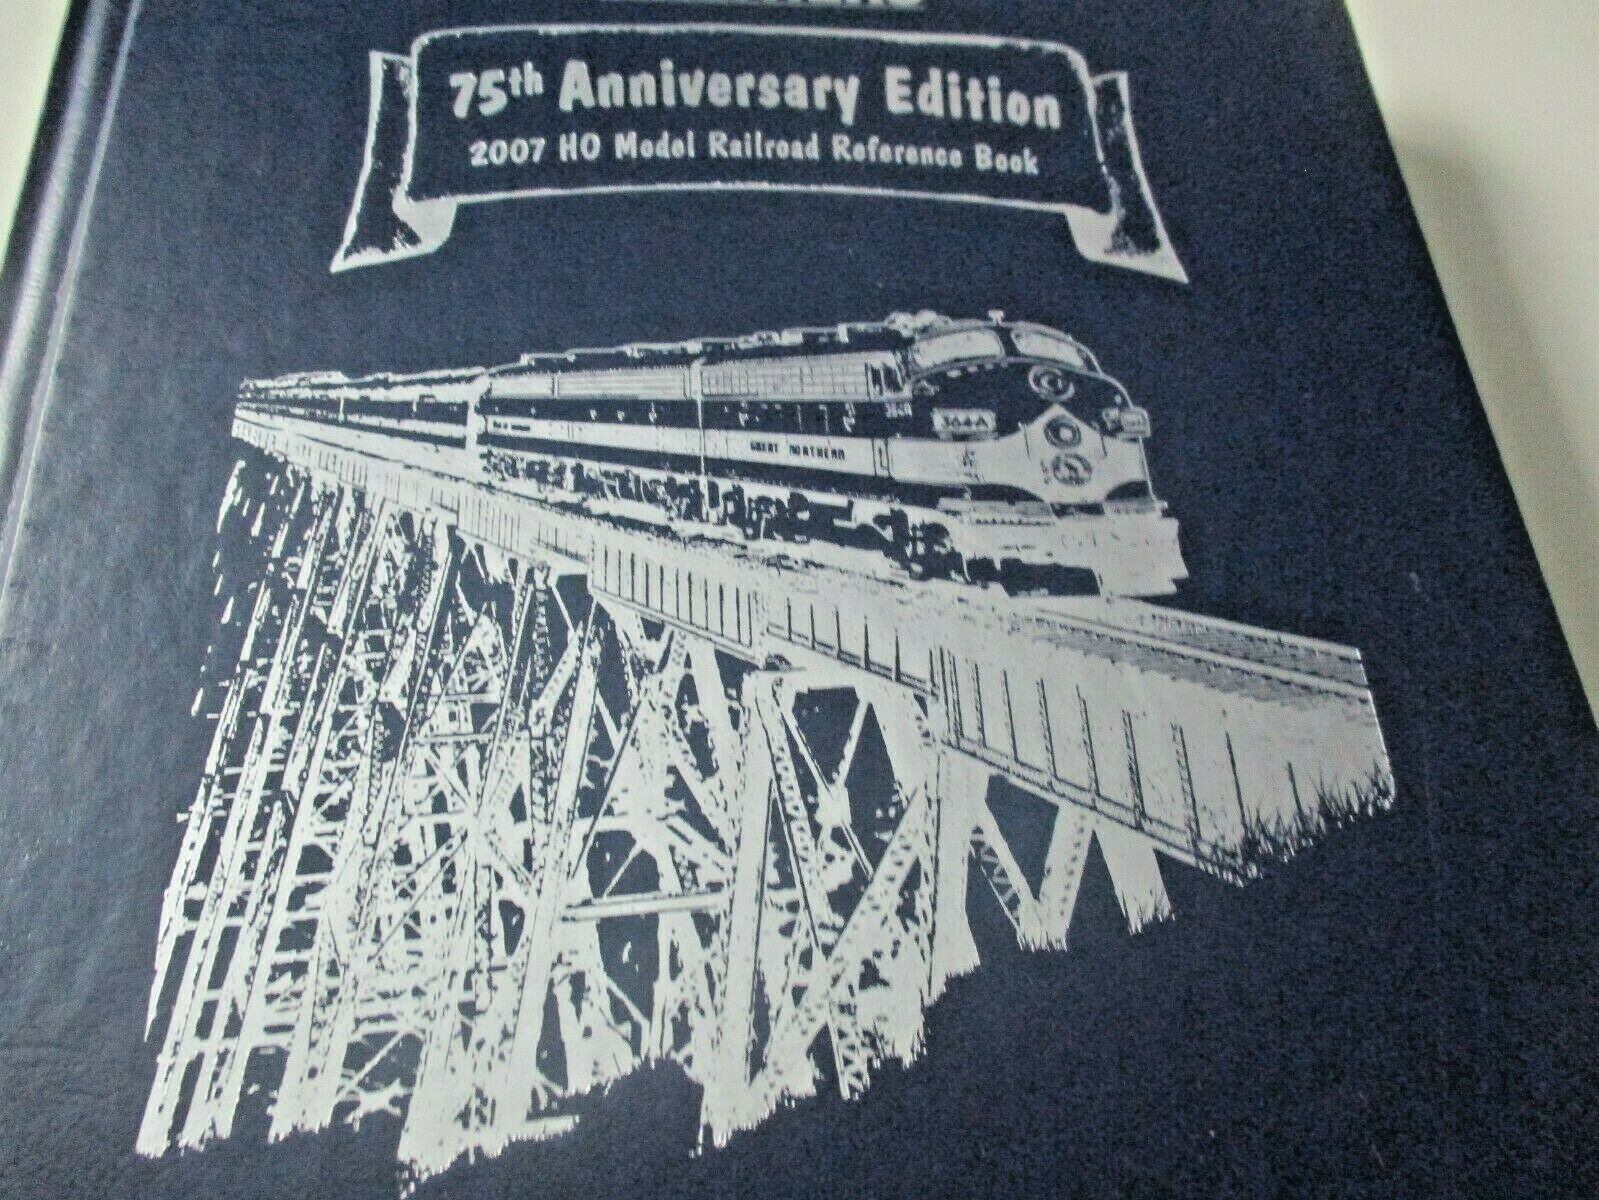 Walthers # 913-2070 2007 75th Anniversary Hard Cover # 612 of 952 Catalog (HO)